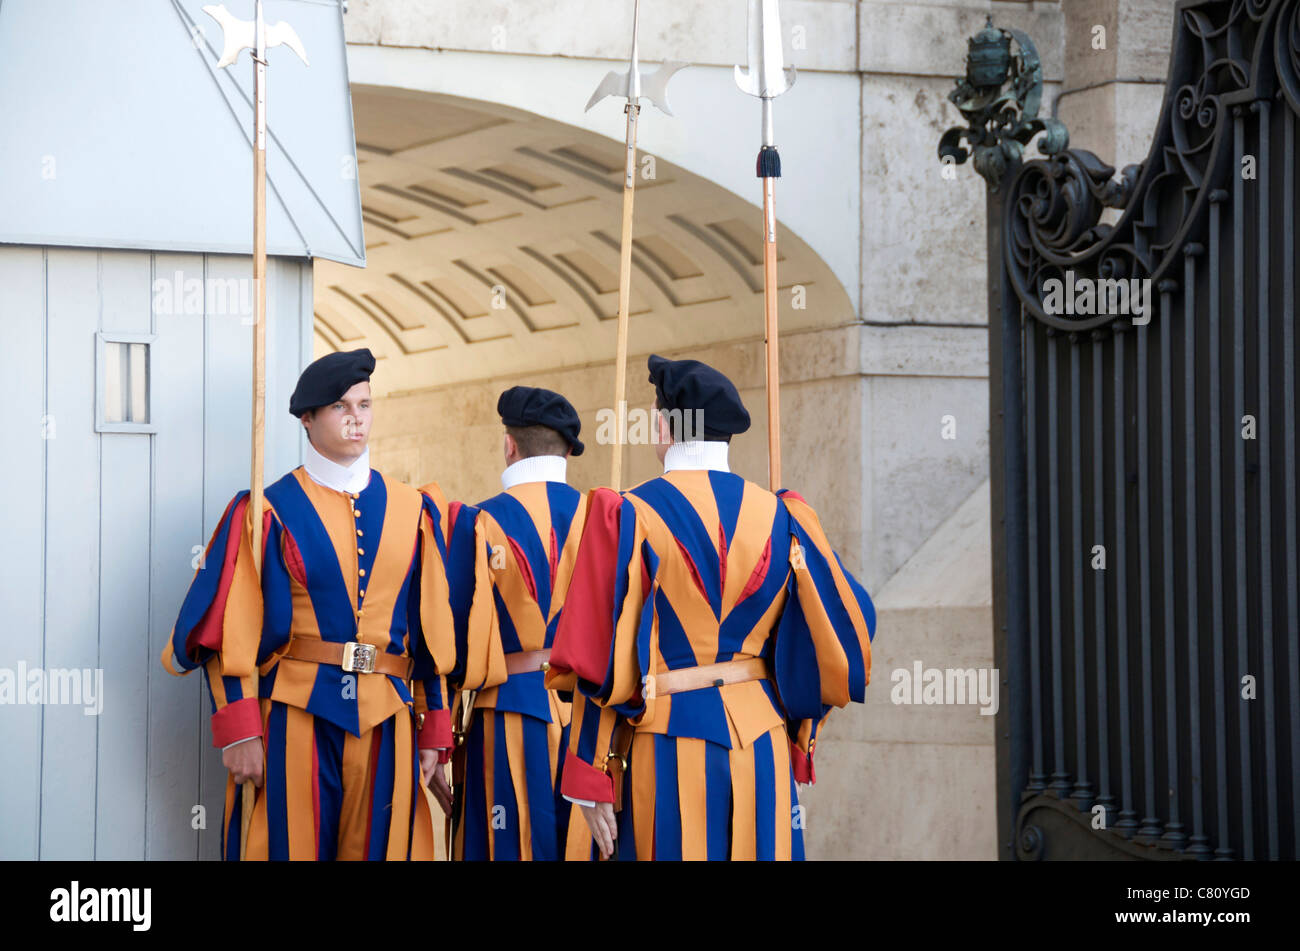 Swiss Guard soldiers at St. Peter's Basilica, Vatican, Rome, Italy, Europe - Stock Image